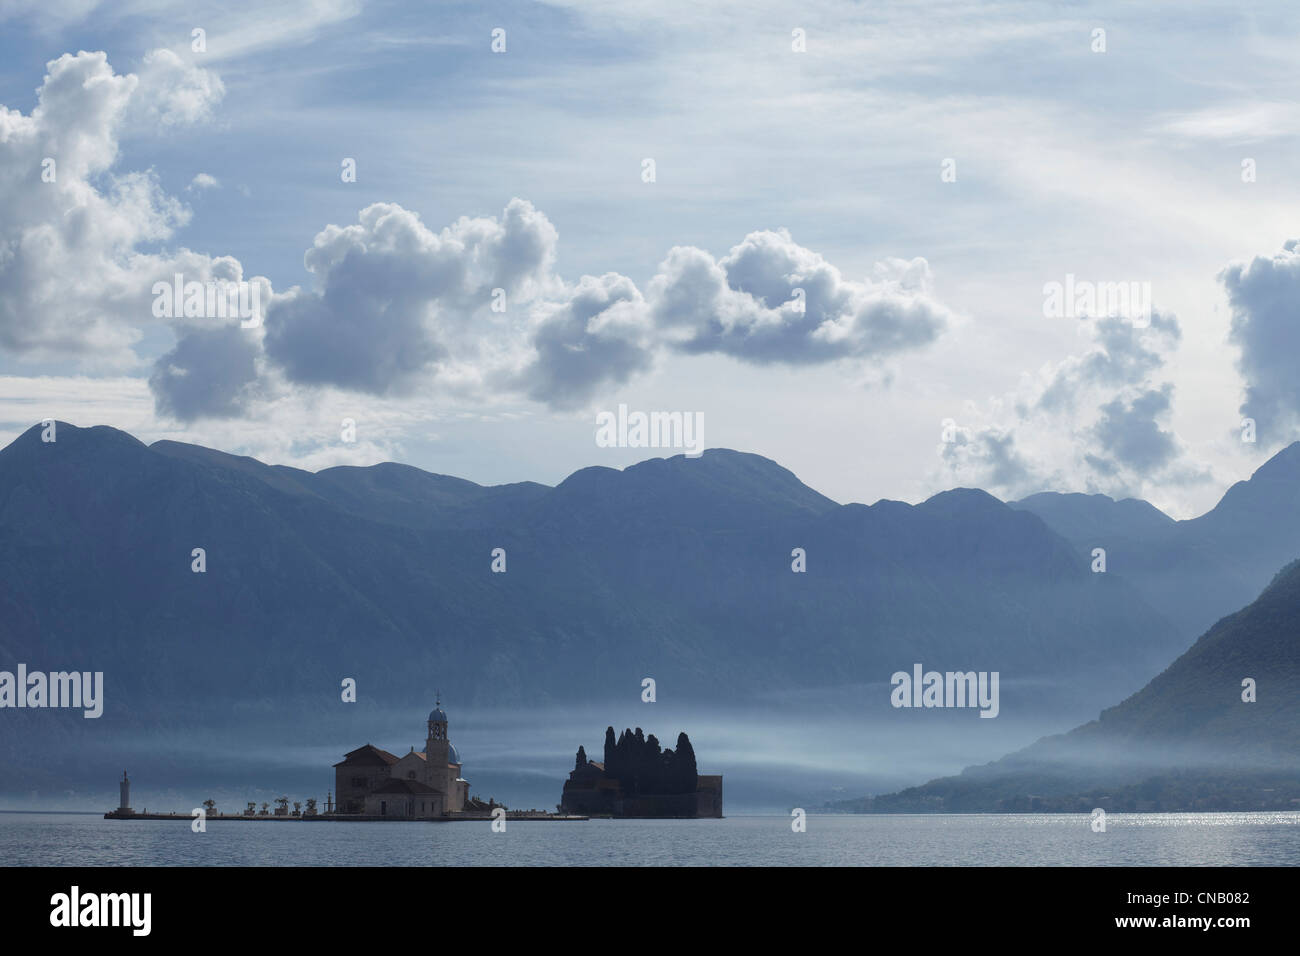 Castle on island in still lake - Stock Image